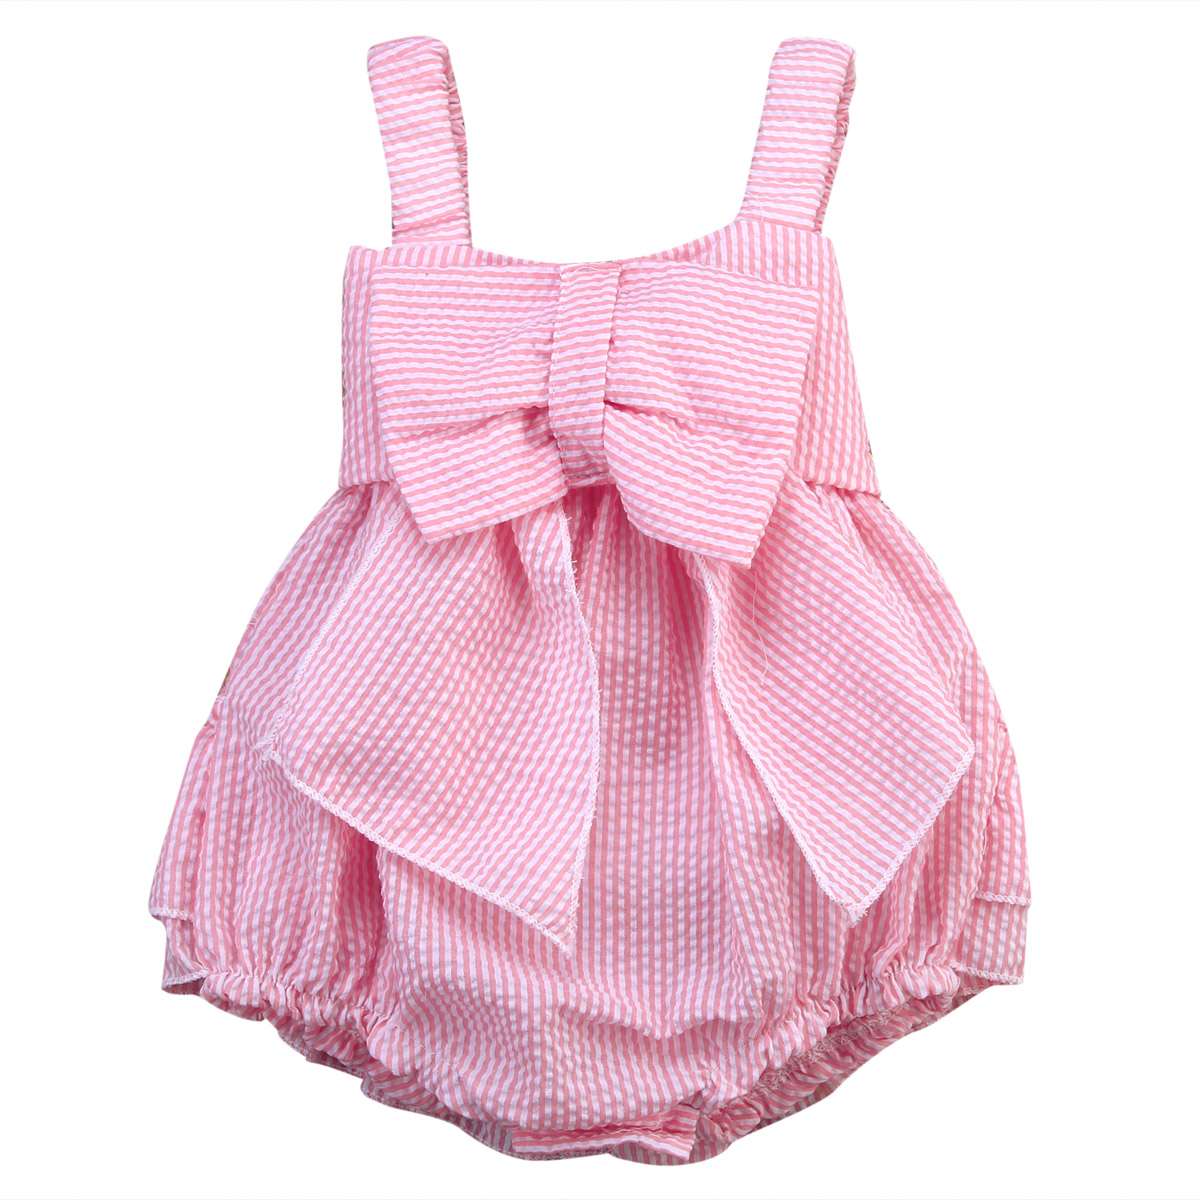 955558537121 0-24M Newborn Baby Girl Romper Sleeveless Pink Bow Plaid Romper Clothes  Cute Bebes Summer Outfit Sunsuit Jumpsut 2017